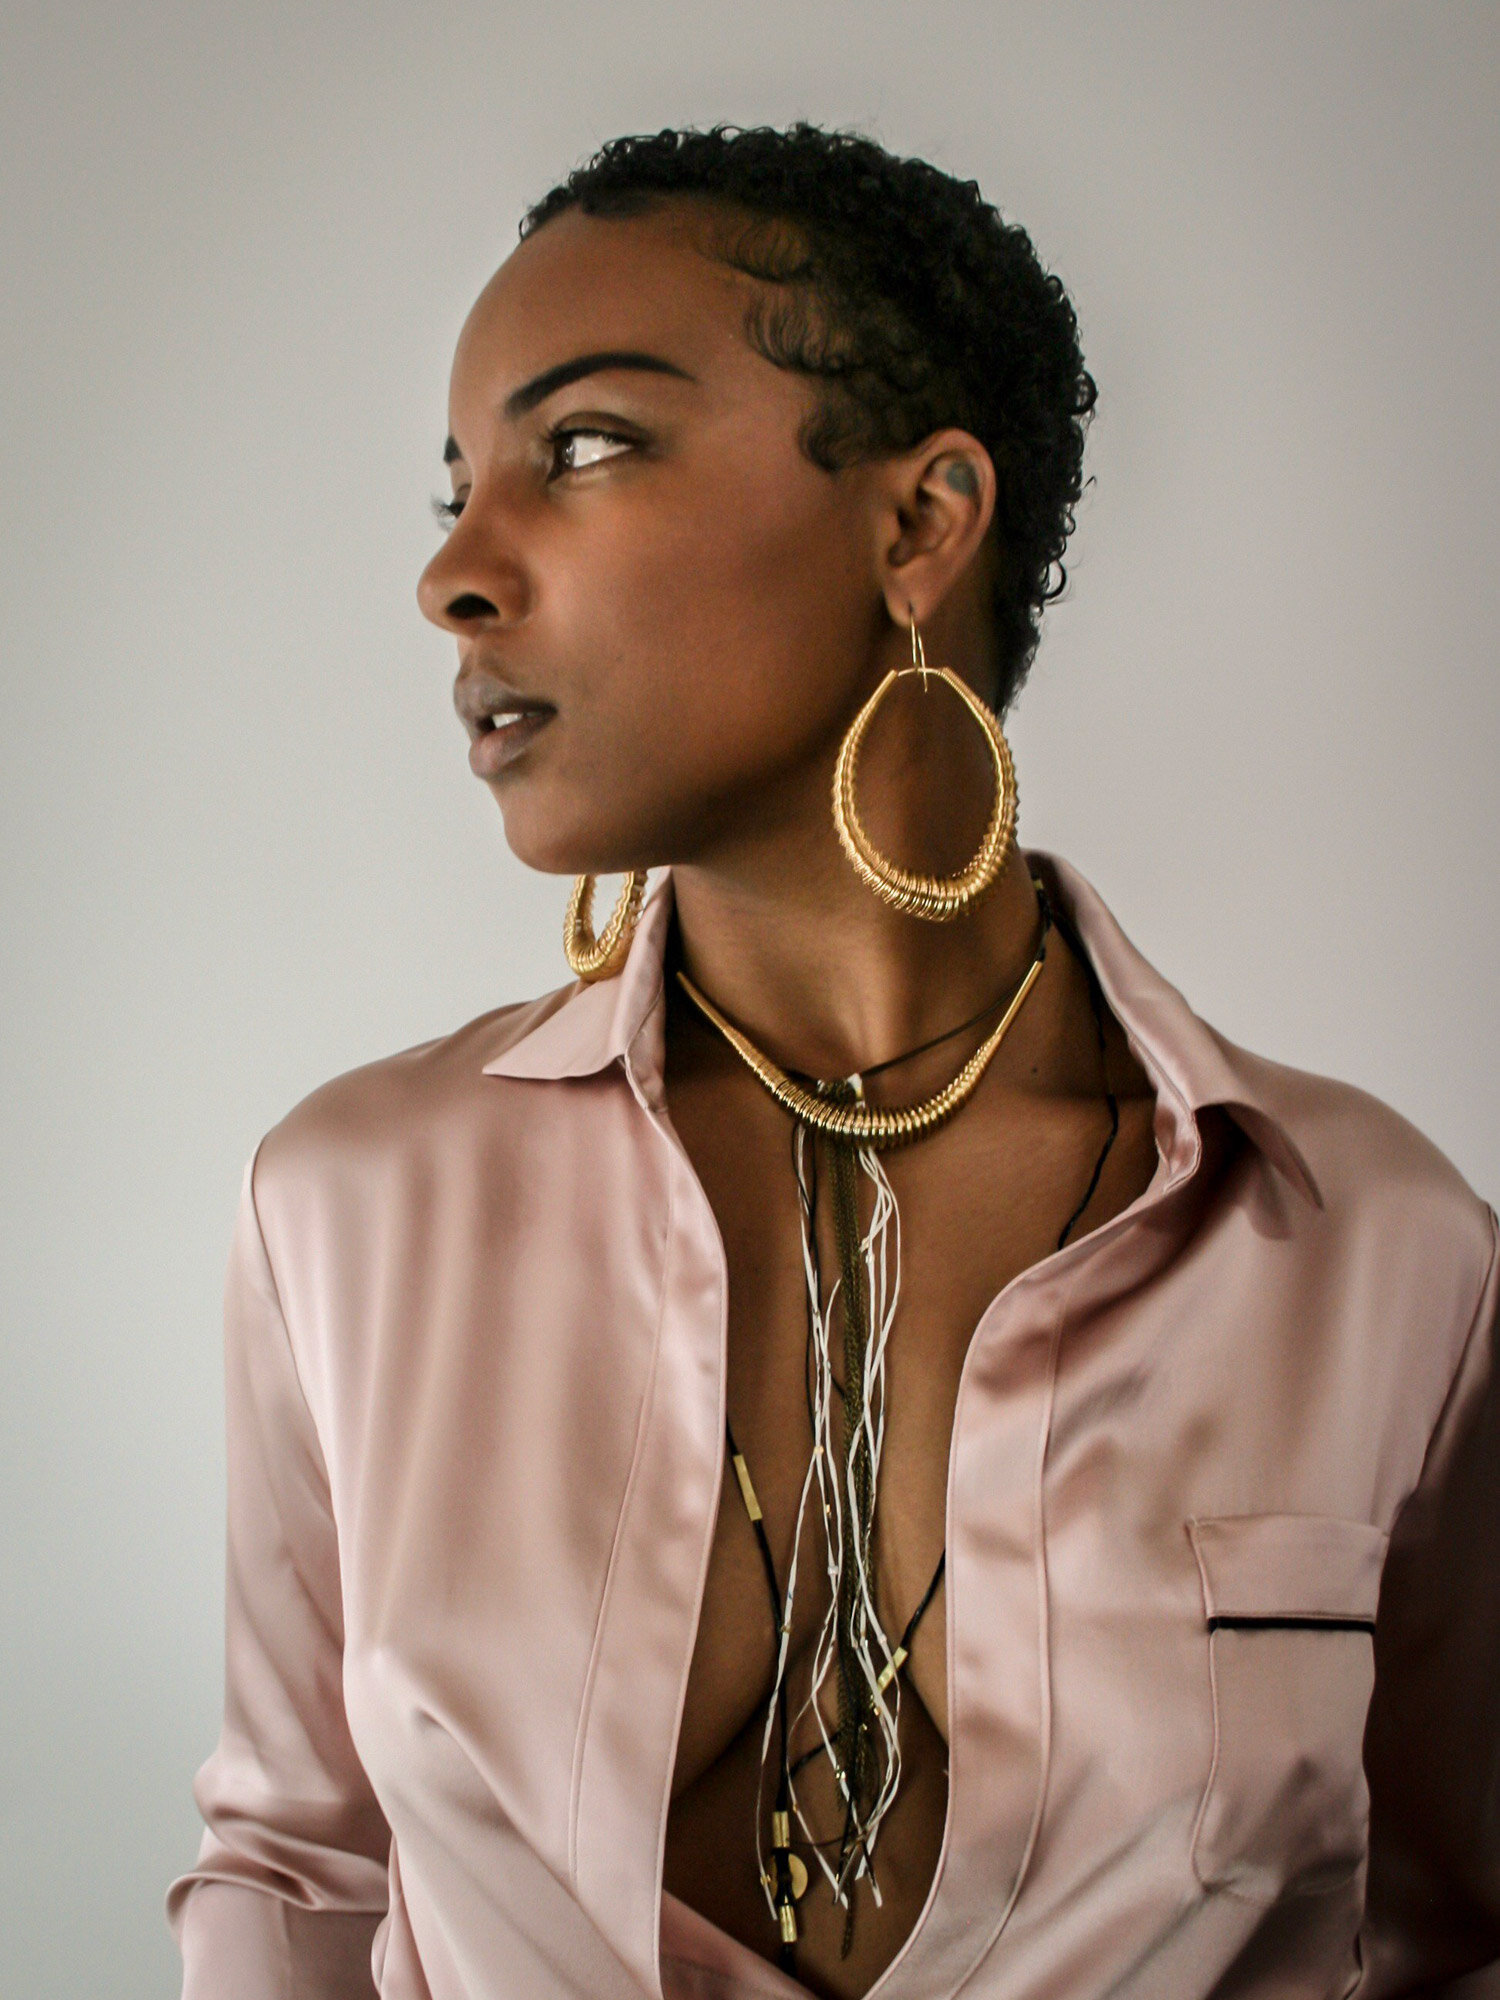 a statement pair of handcrafted millepiede earrings and a millepiede piccolo necklace pair with a medusa necklace and an anellide con occhio necklace create a layered and boho-chic look on this model wearing a Lotte99 shirt.